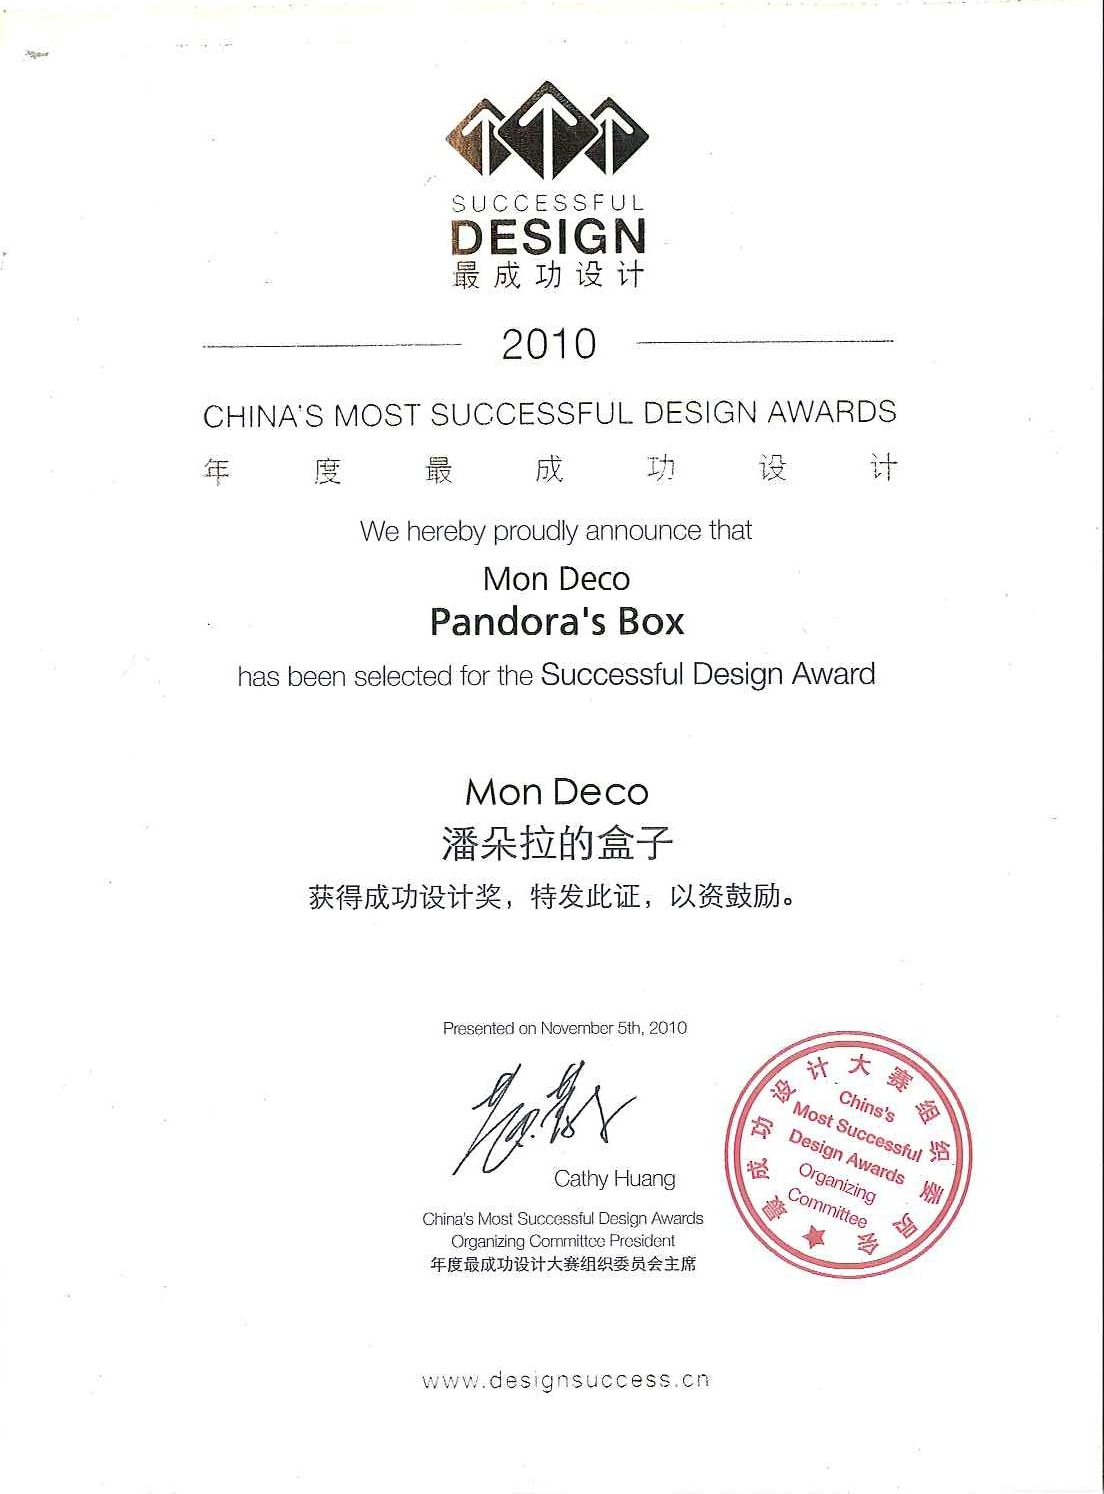 2010 sucessful design award